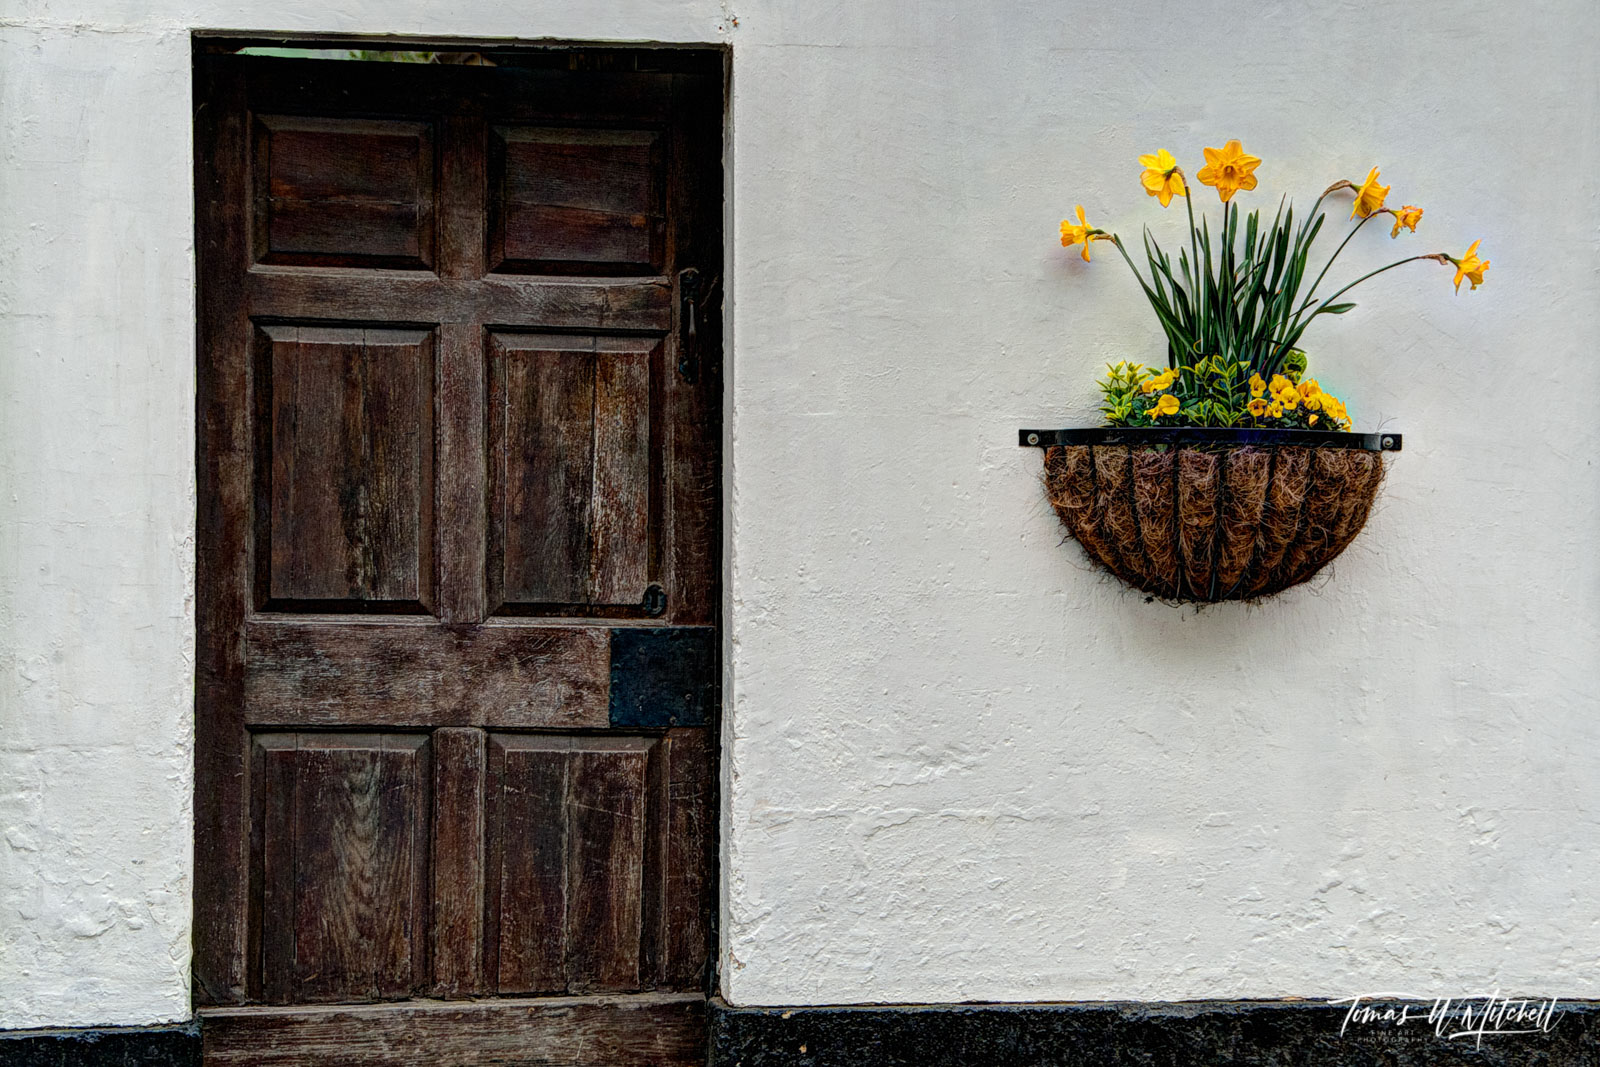 limited edition, museum grade, fine art, prints, photographing, flowers, doors, still lifes, door, image, daffodils, England, Cotswolds, photo